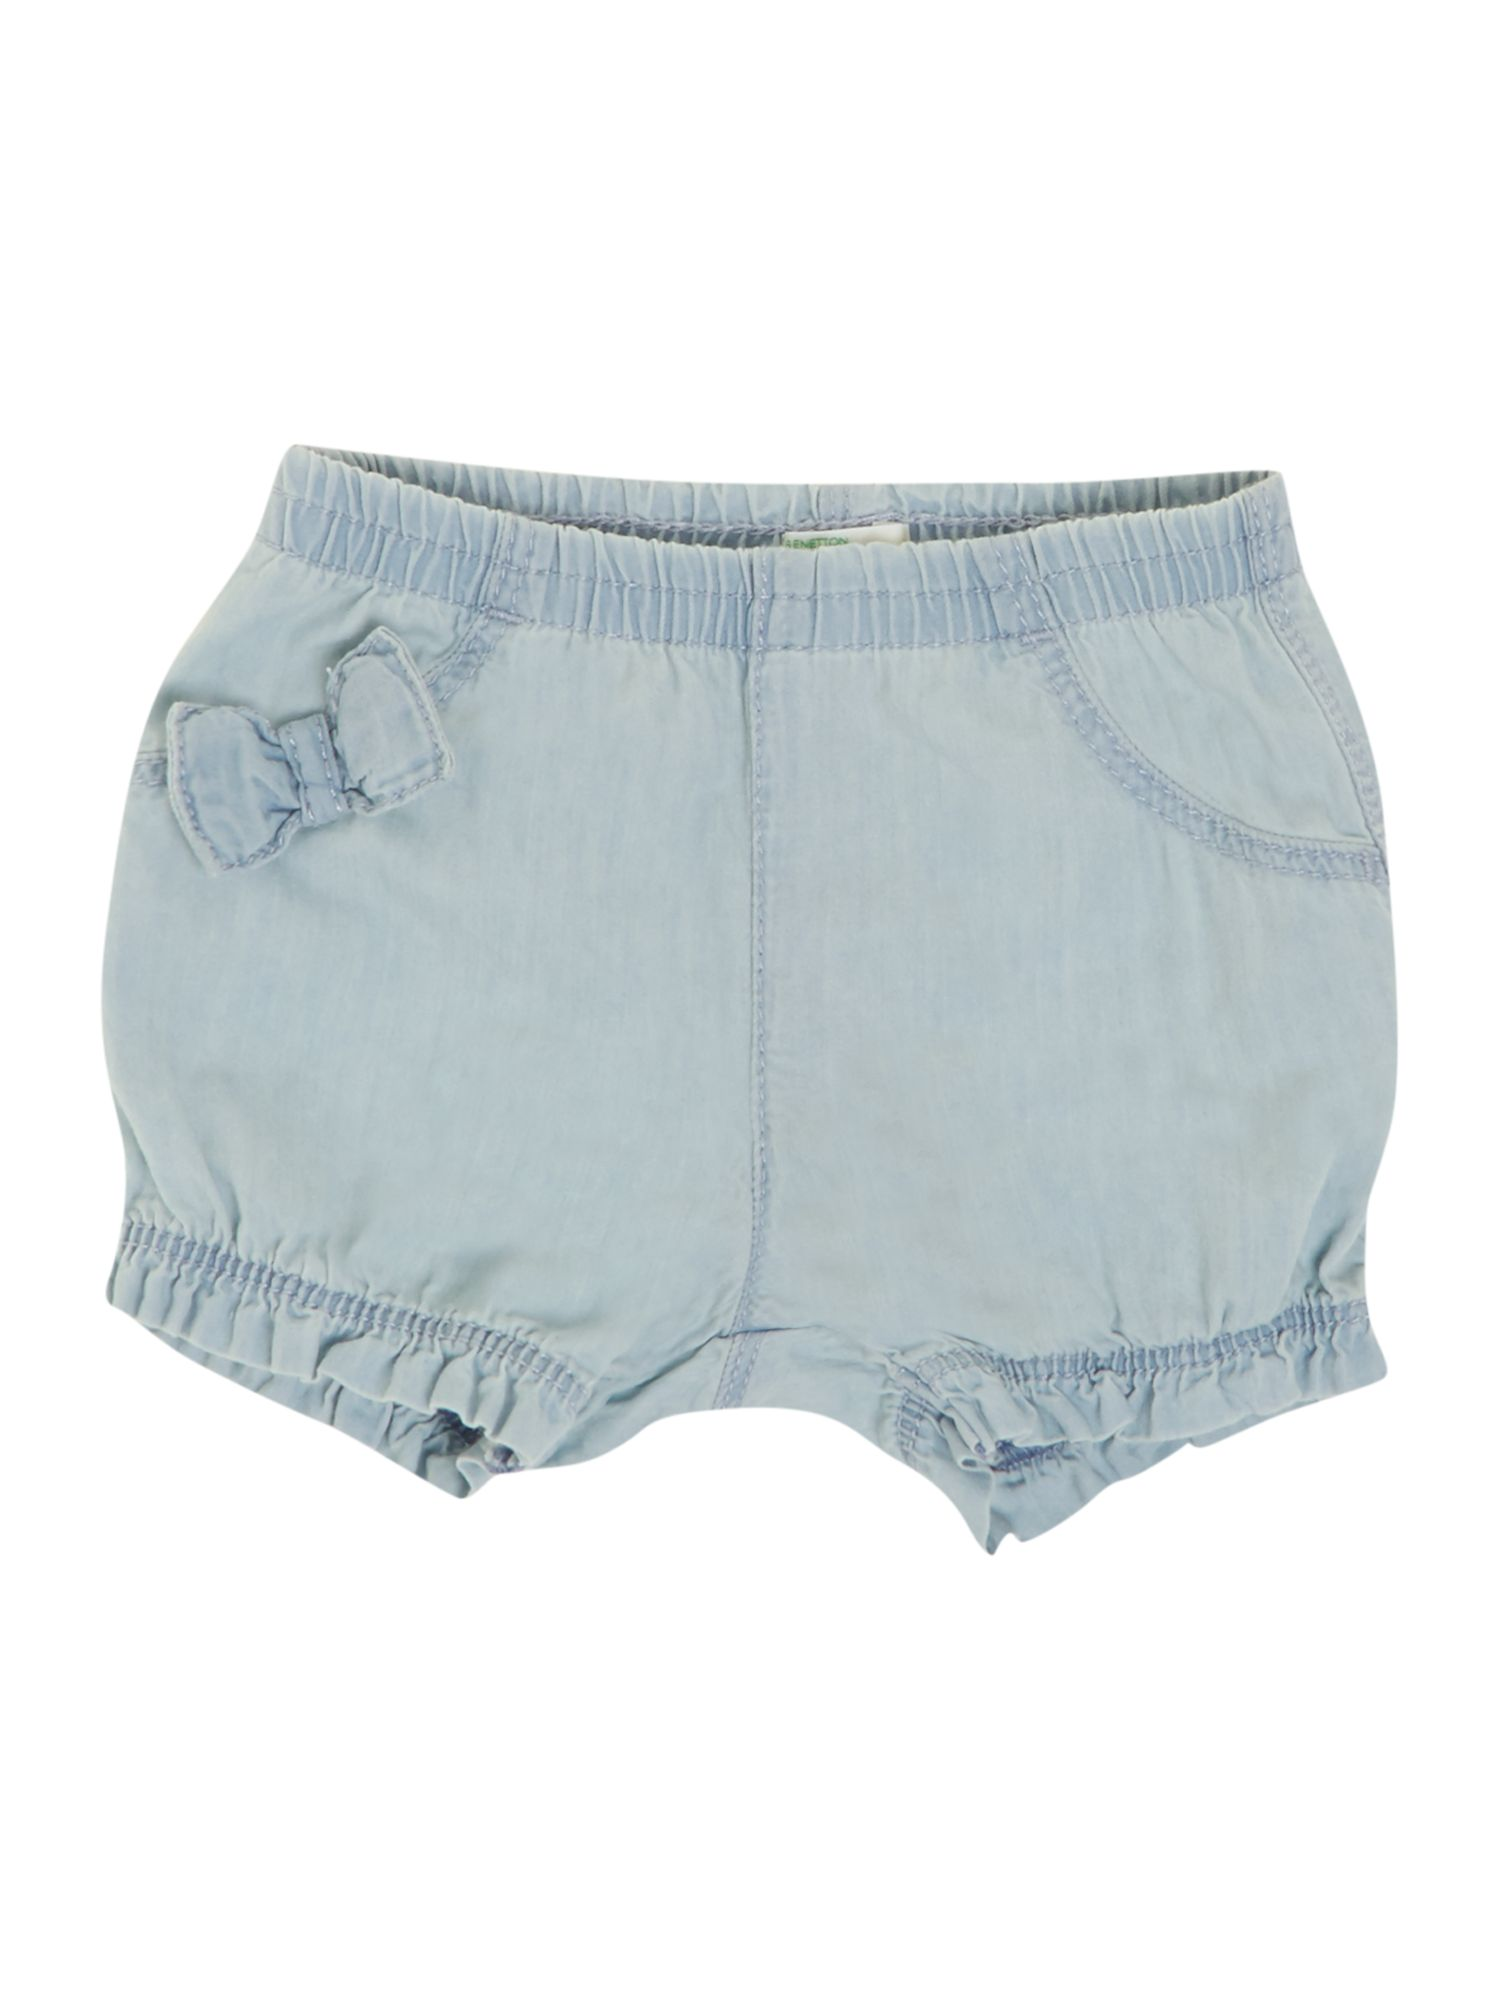 Girls chambray shorts